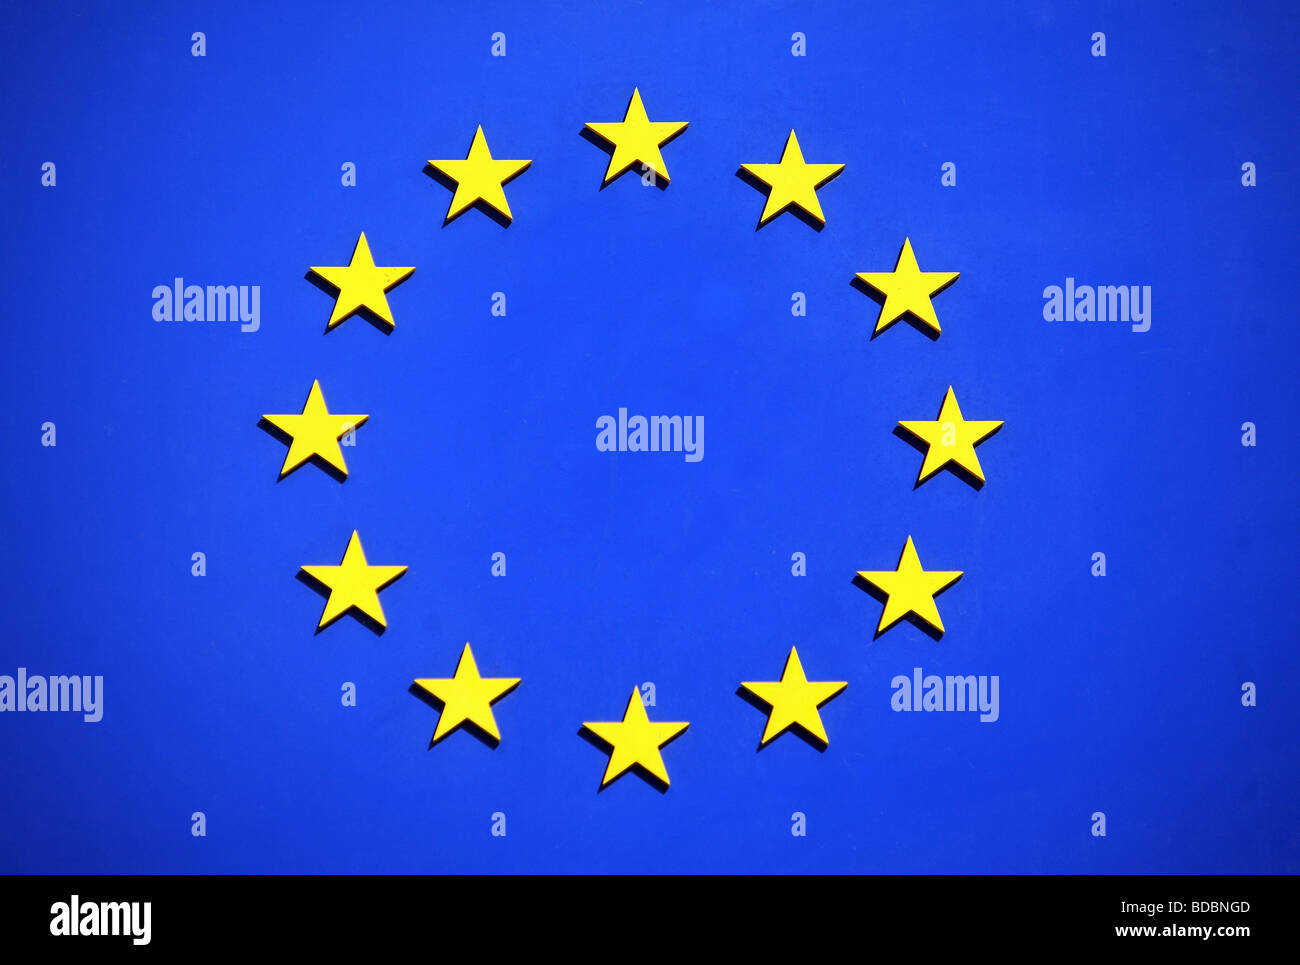 Symbolic picture of a the European Union flag - Stock Image